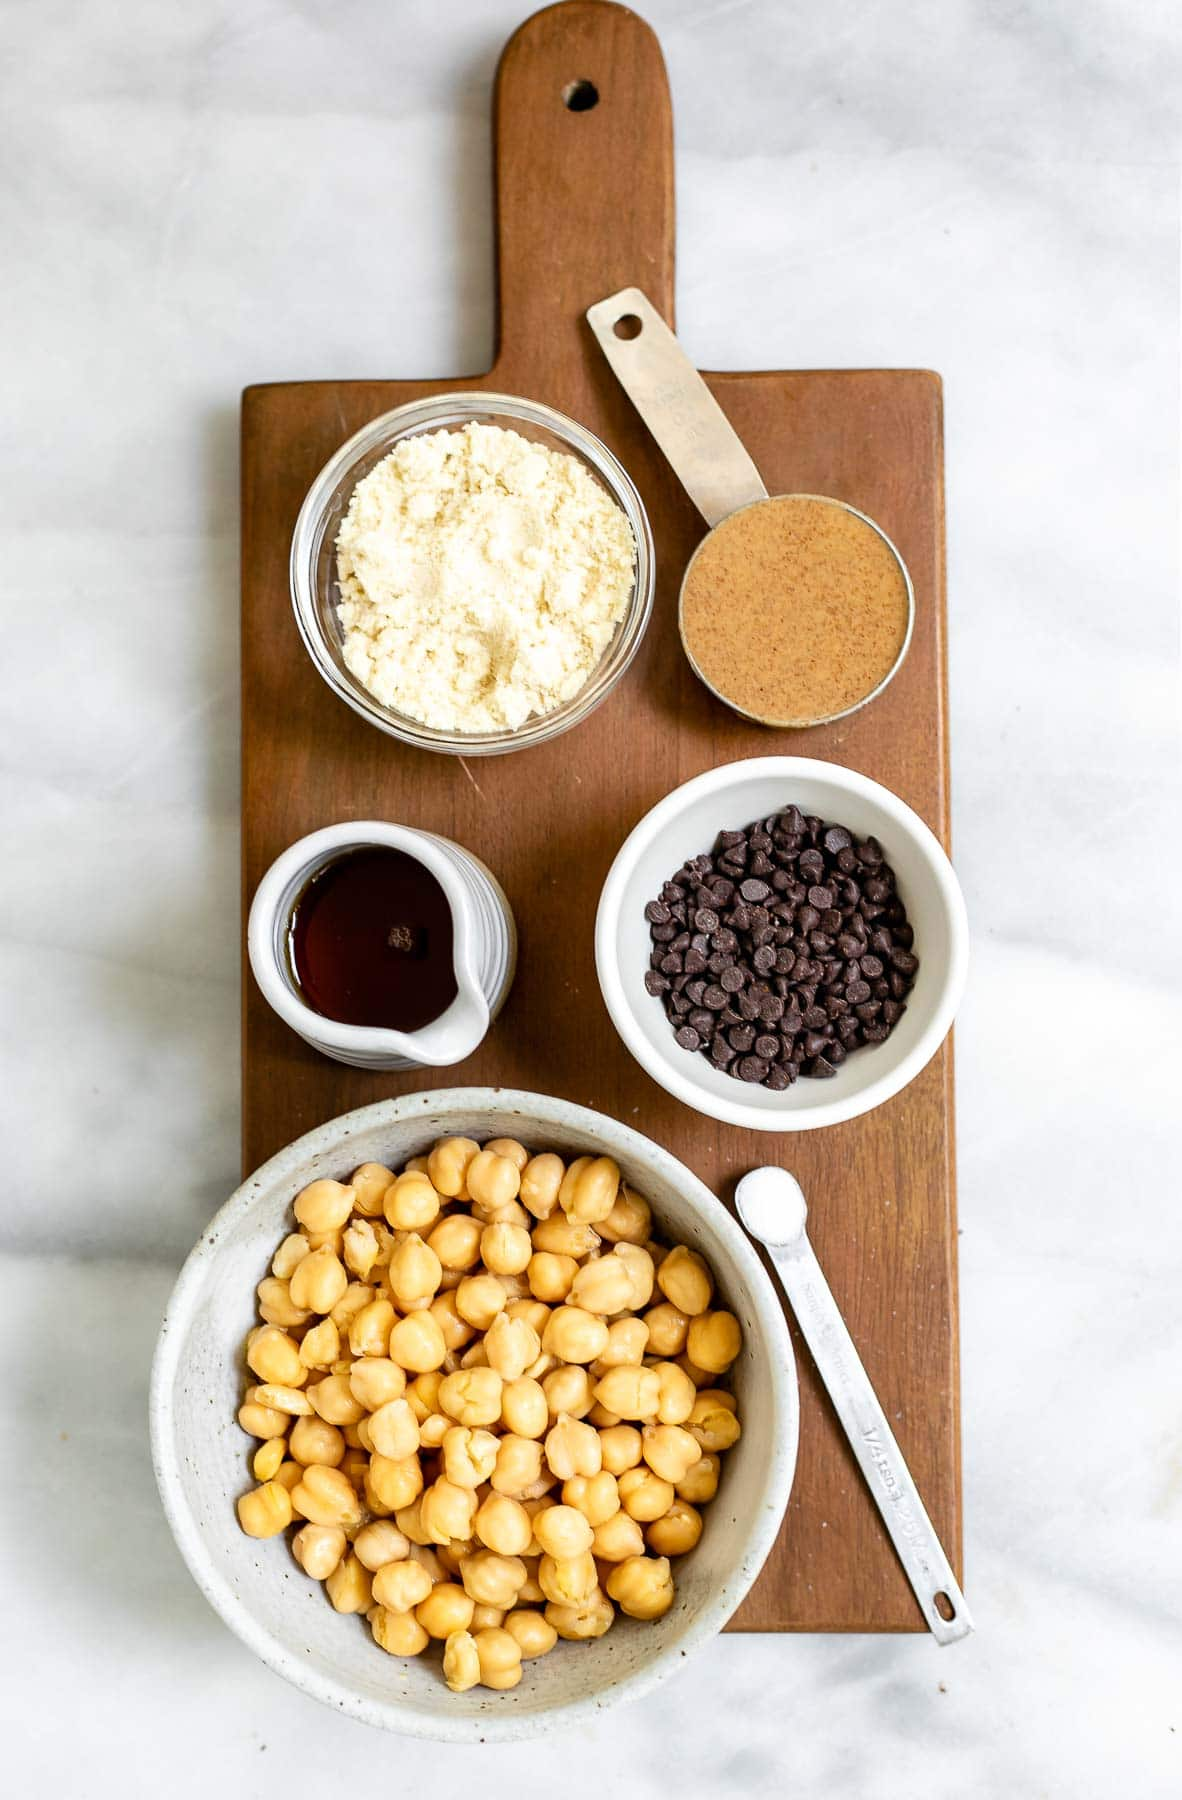 Ingredients for the chickpea cookie dough arranged in bowls on a wood board.